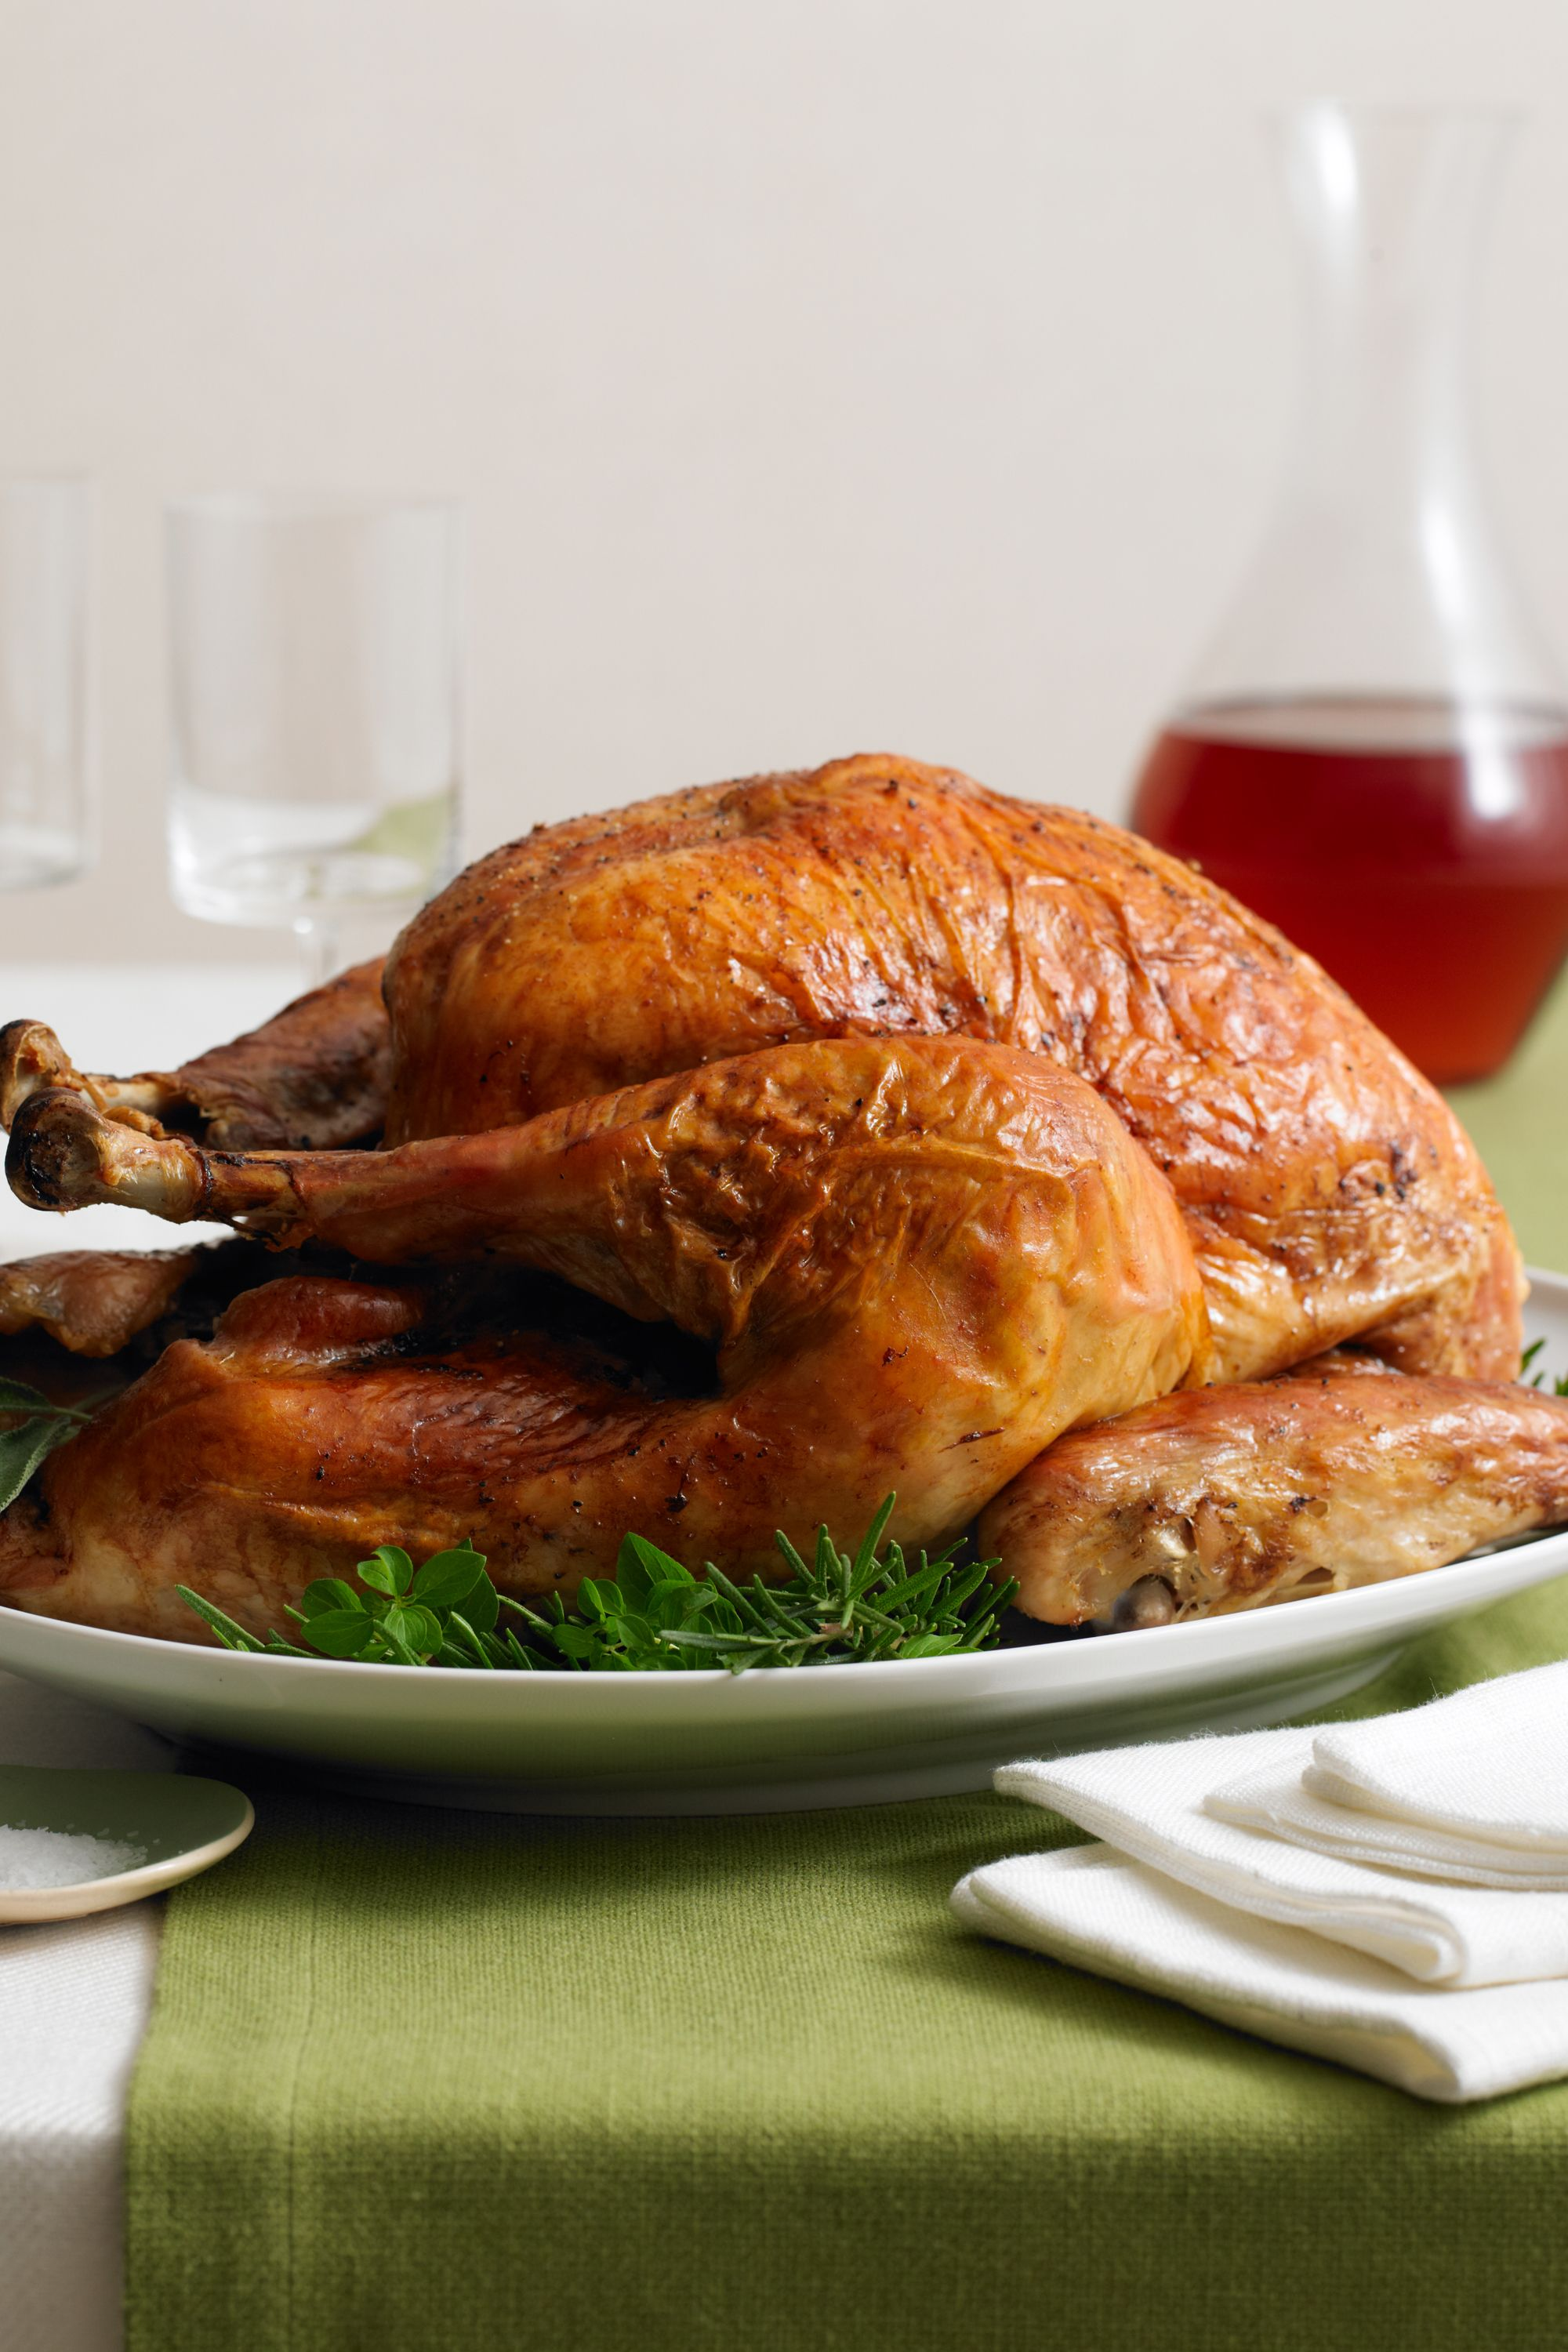 Herb-Rubbed Turkey with Chardonnay Gravy recommendations